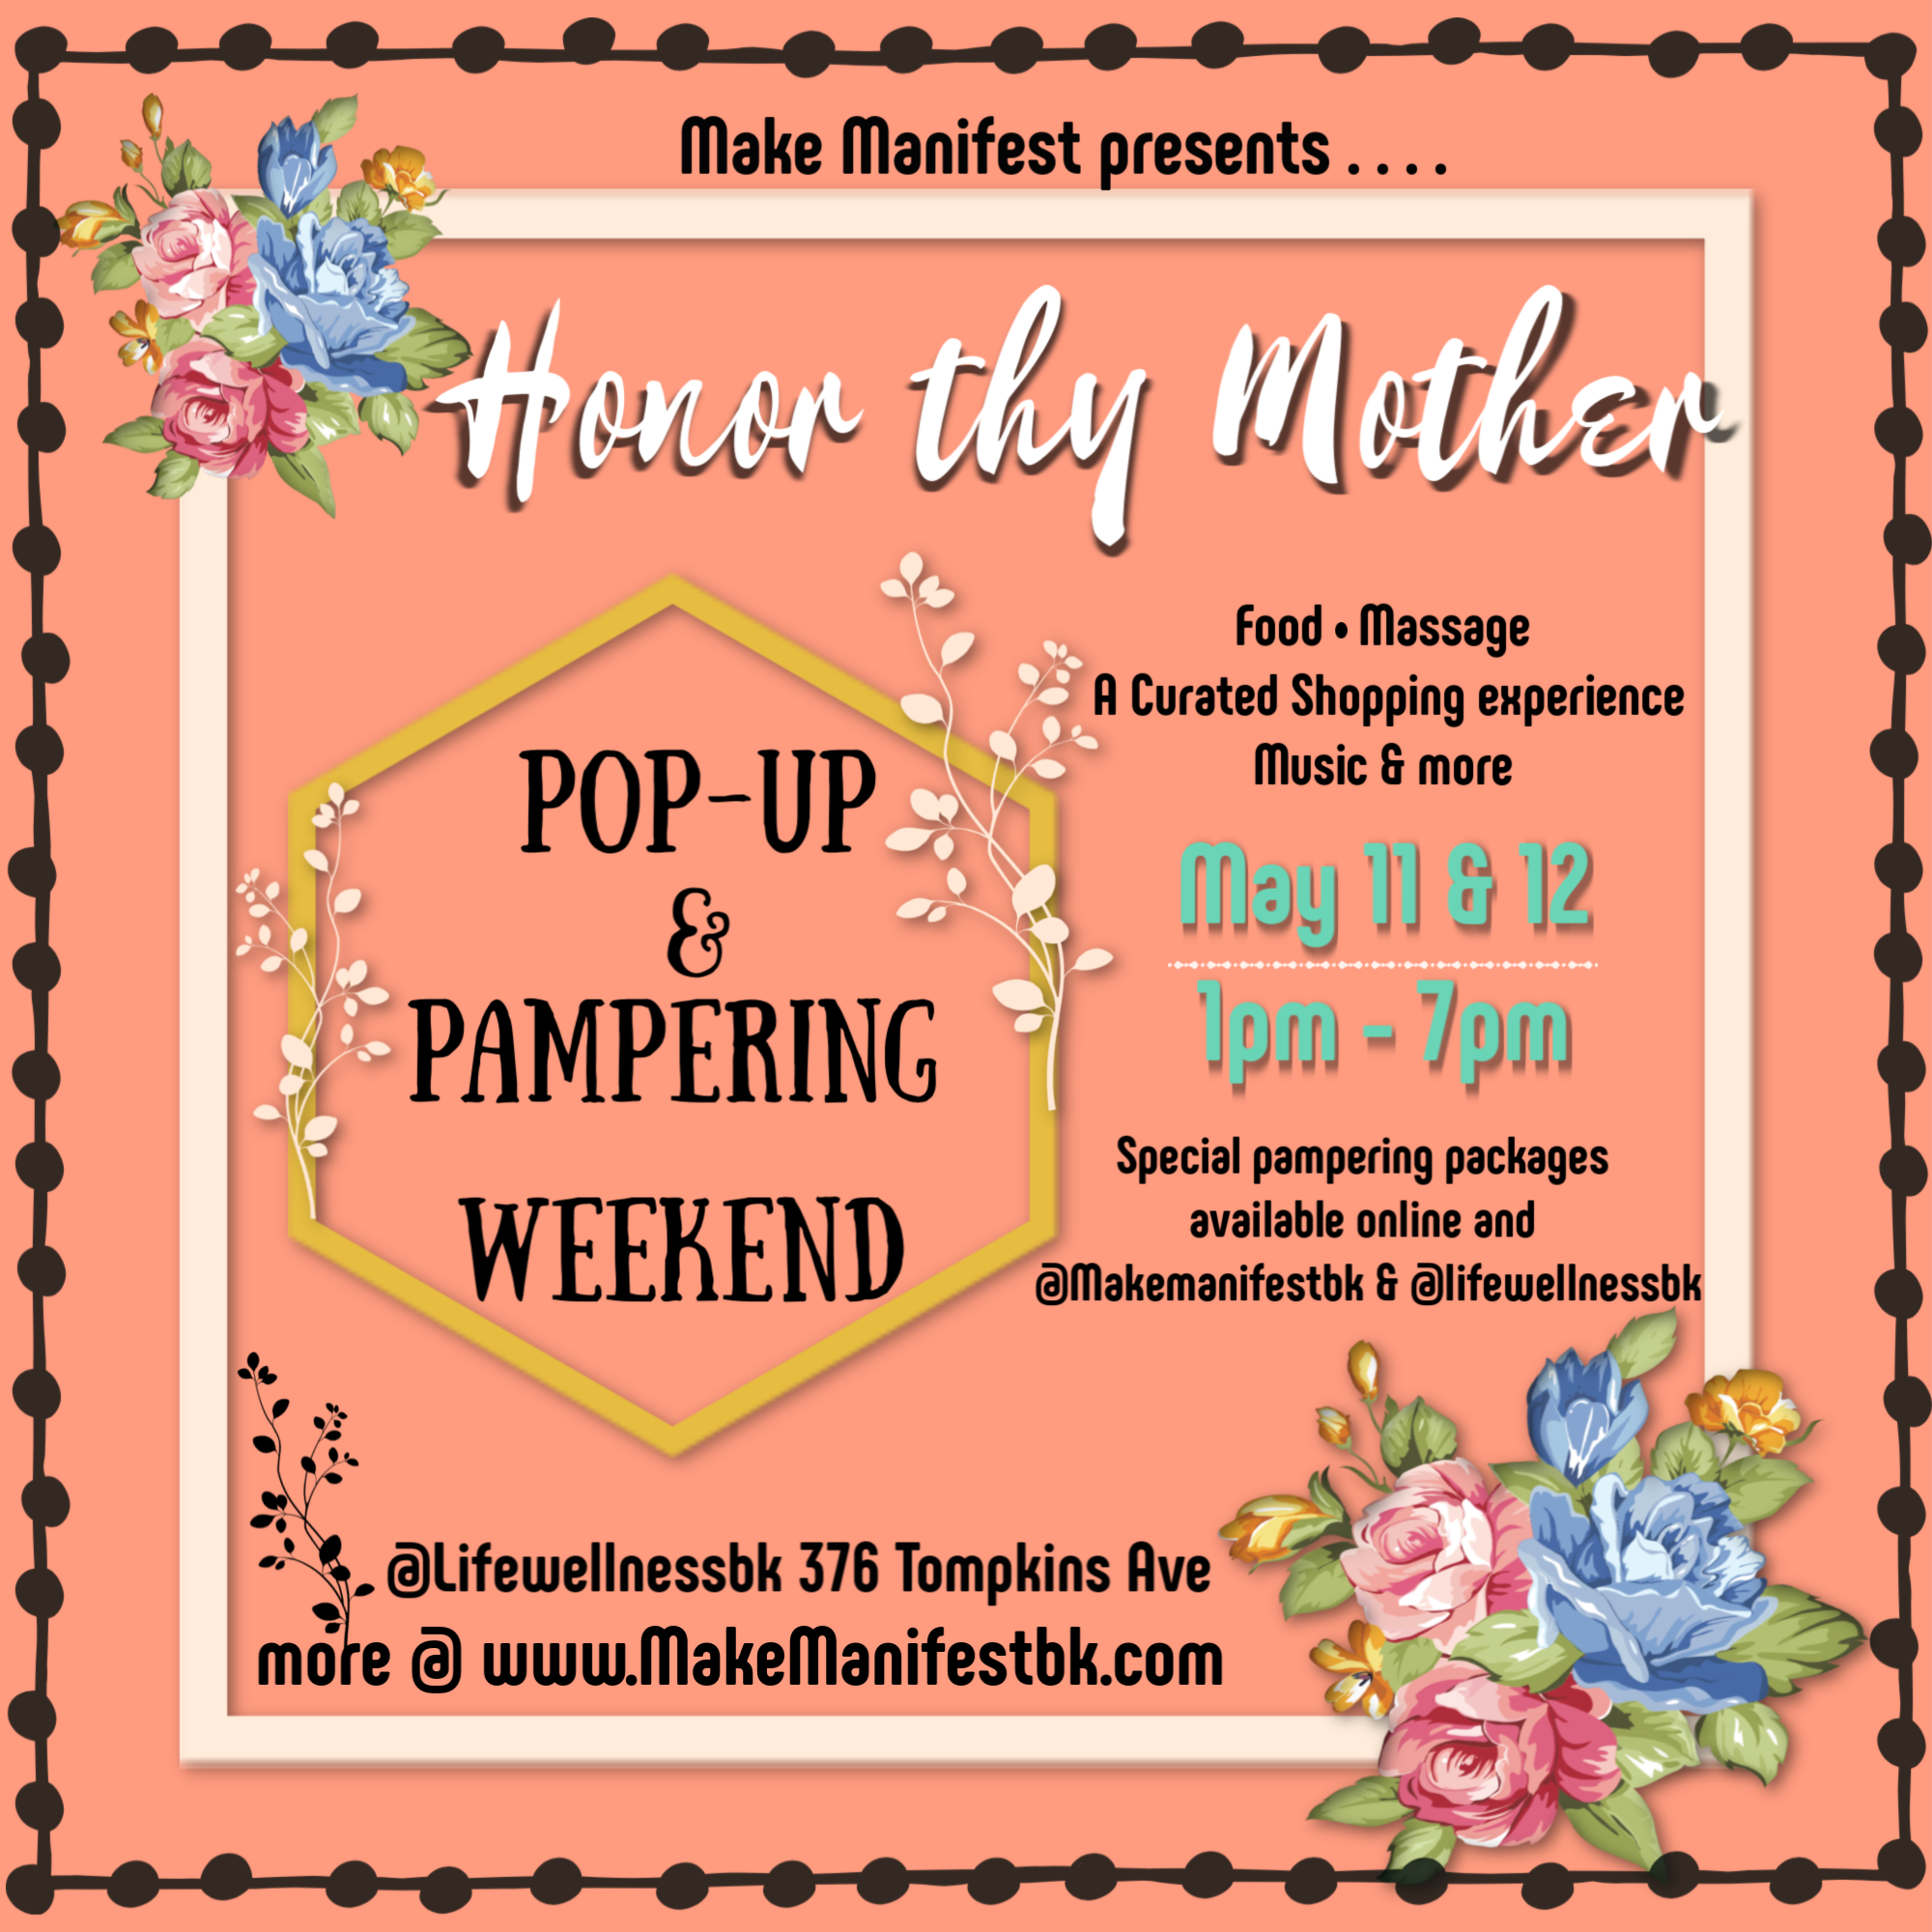 Honor thy Mother Pop-Up & Pampering Weekend @lifewellnessbk - Beautifully curated event on backyard garden oasis @ the Life Wellness Bk space in Bed-stuy Brooklyn. Limited vendor spaces available. Apply here.